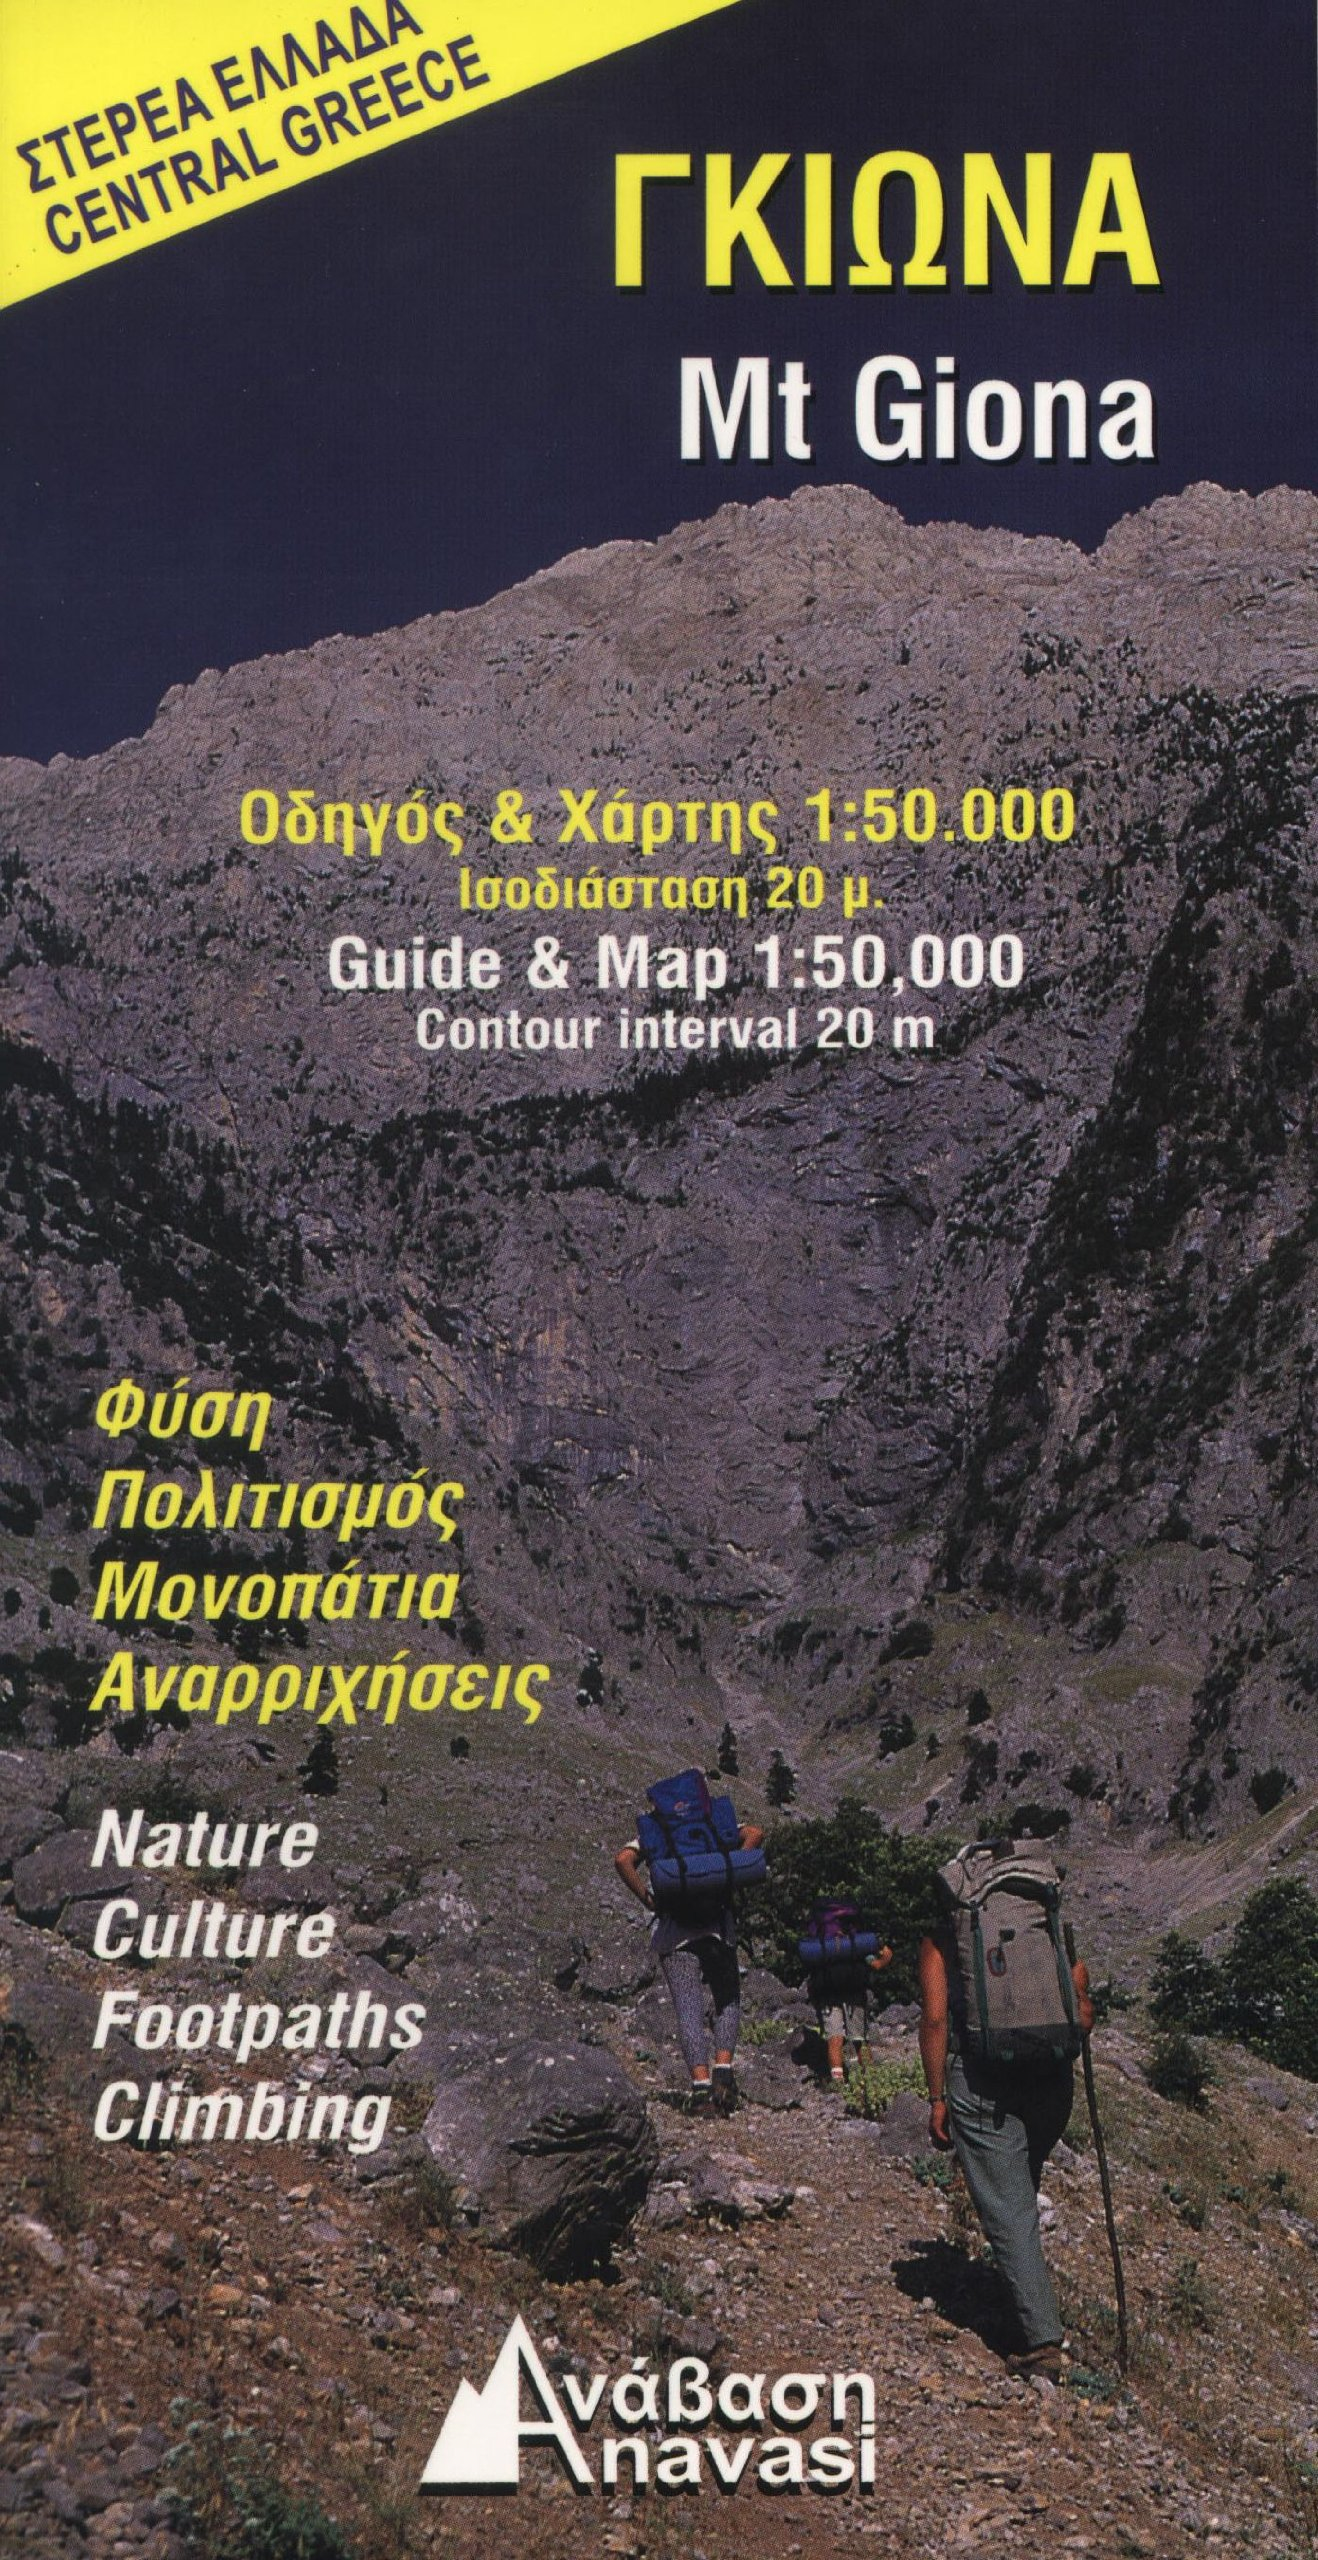 Download Mt.Giona (Central Greece) 1:40,000 Hiking Map & Guide ebook